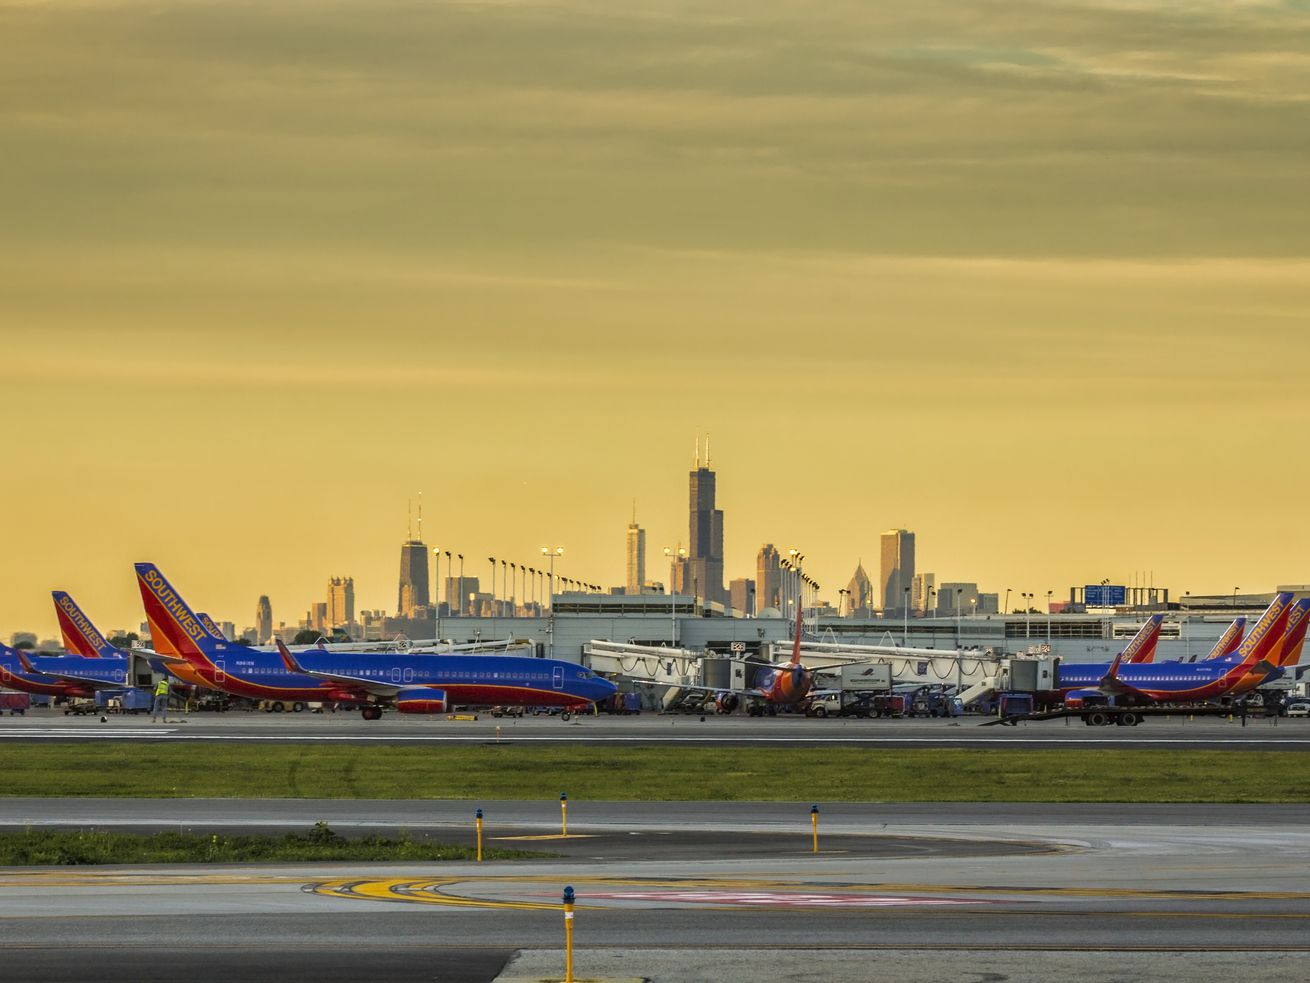 The view from Midway airport